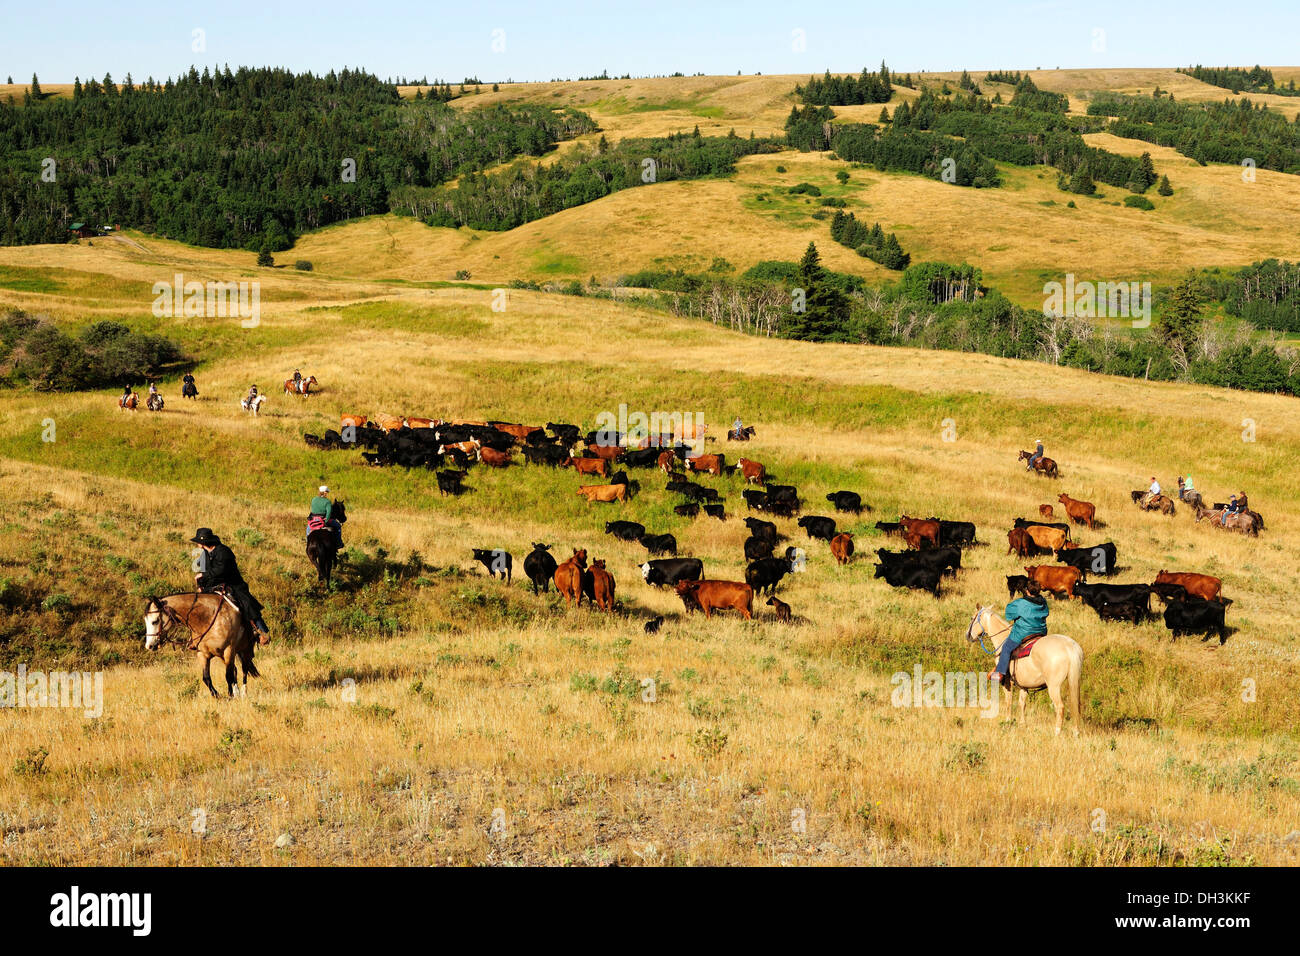 Image result for COWGIRLS AND CATTLE